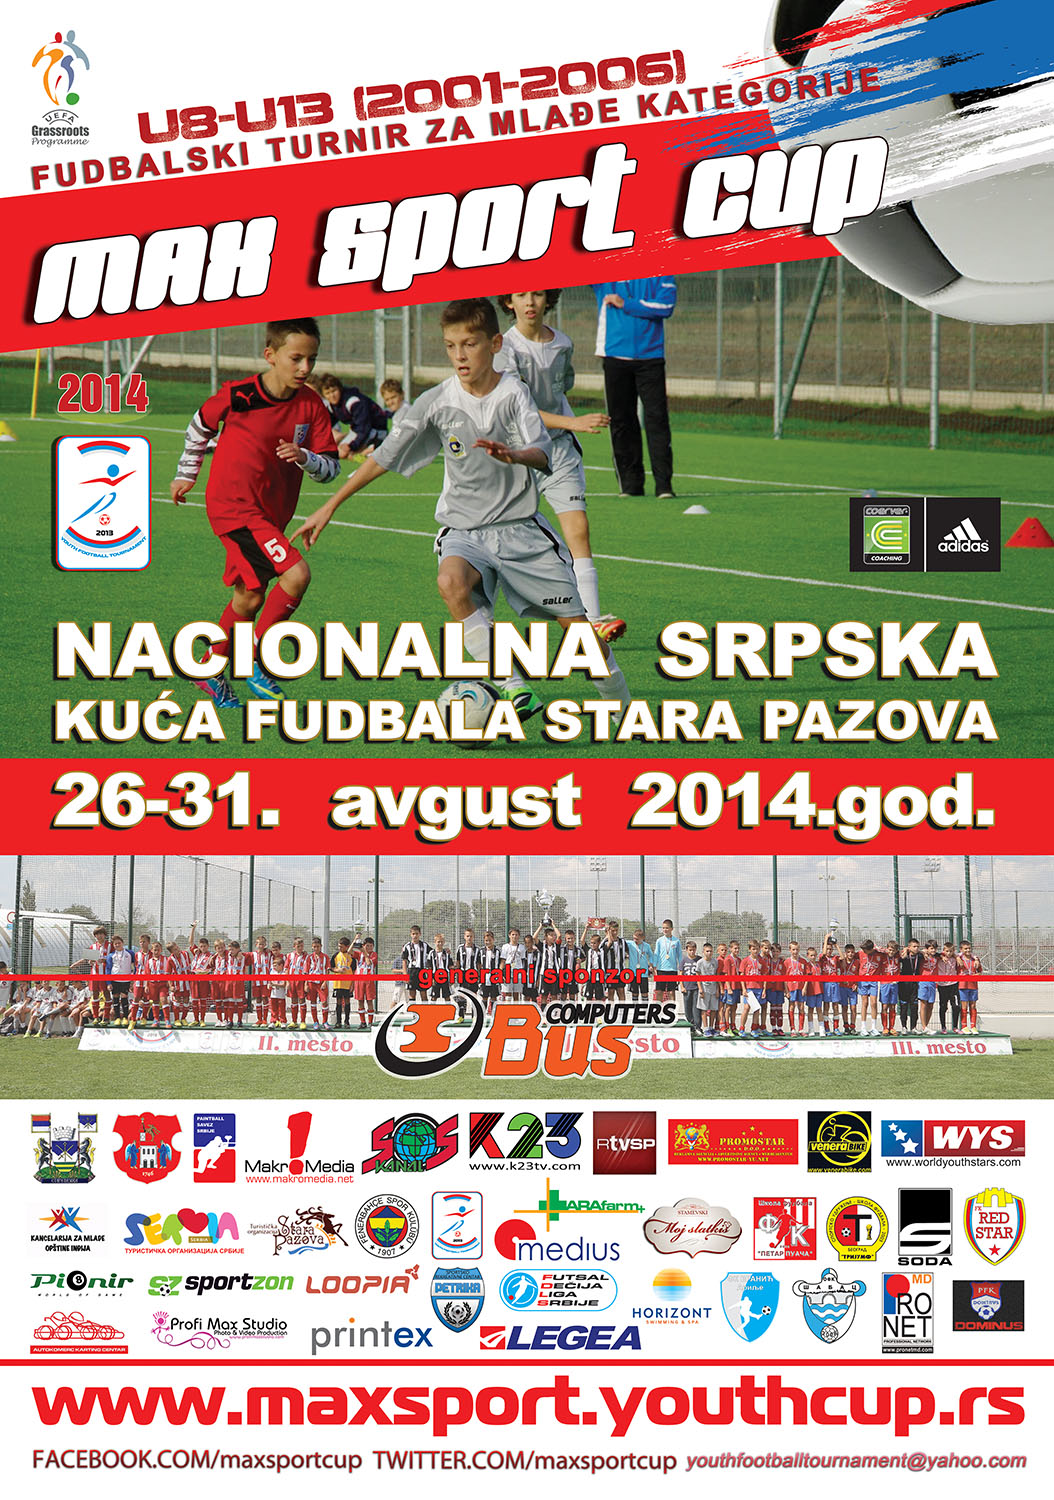 Max sport Cup 2014